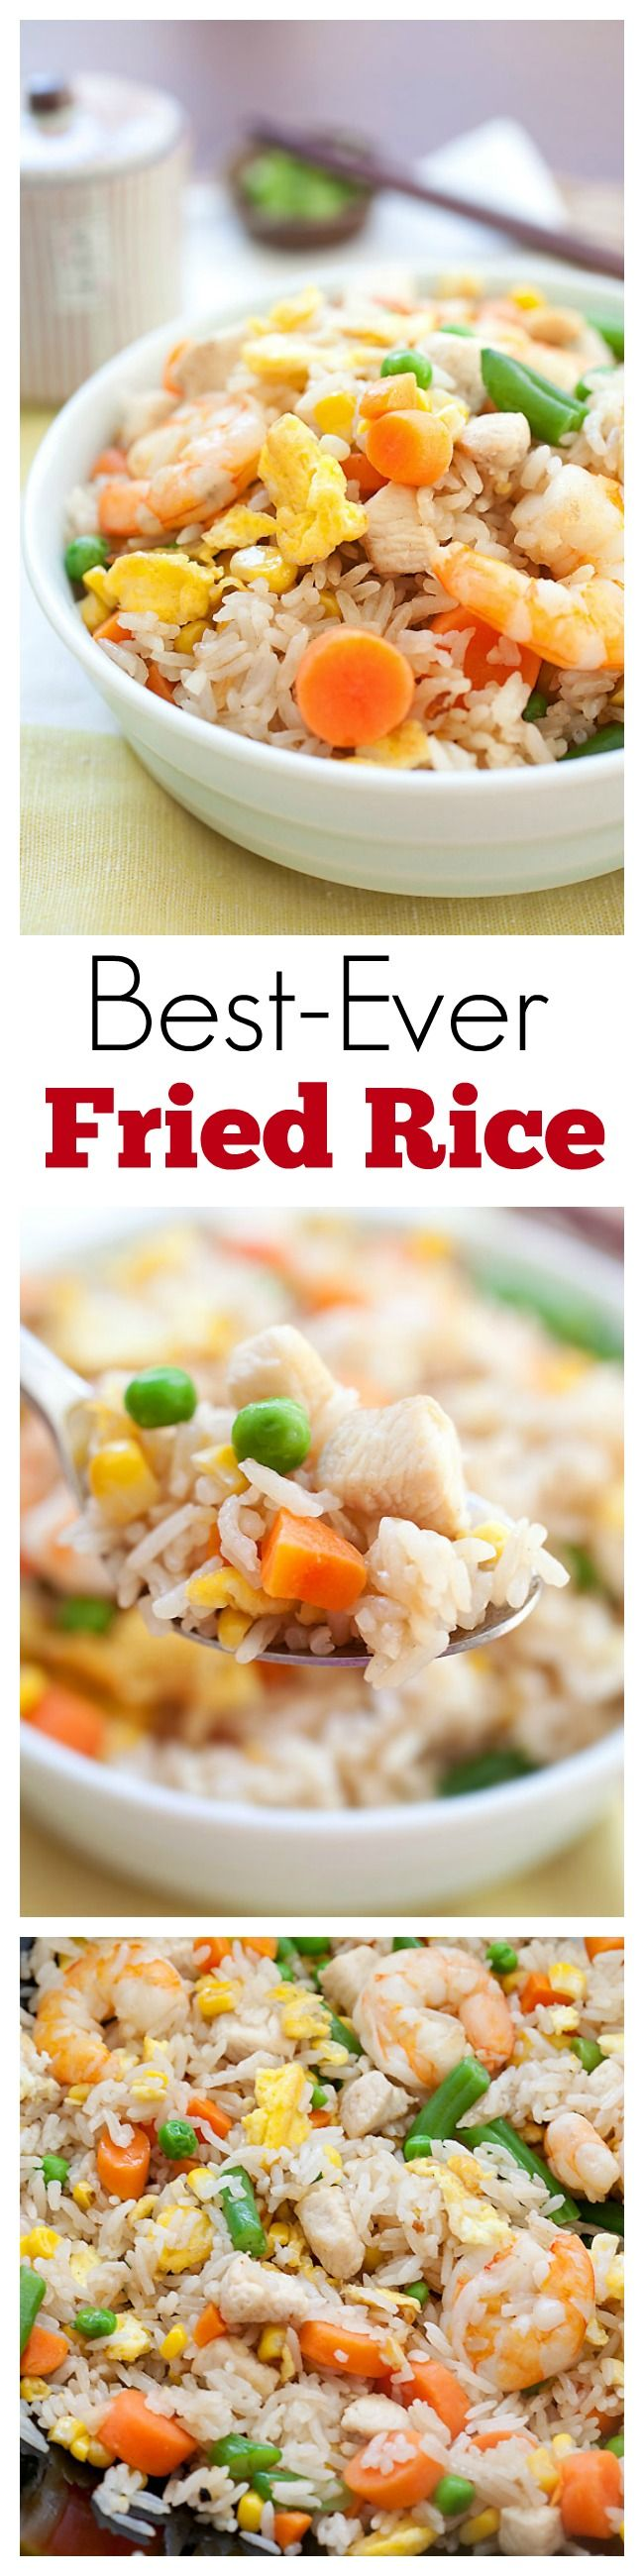 Fried Rice - best-ever & easiest fried rice recipe with eggs, chicken…